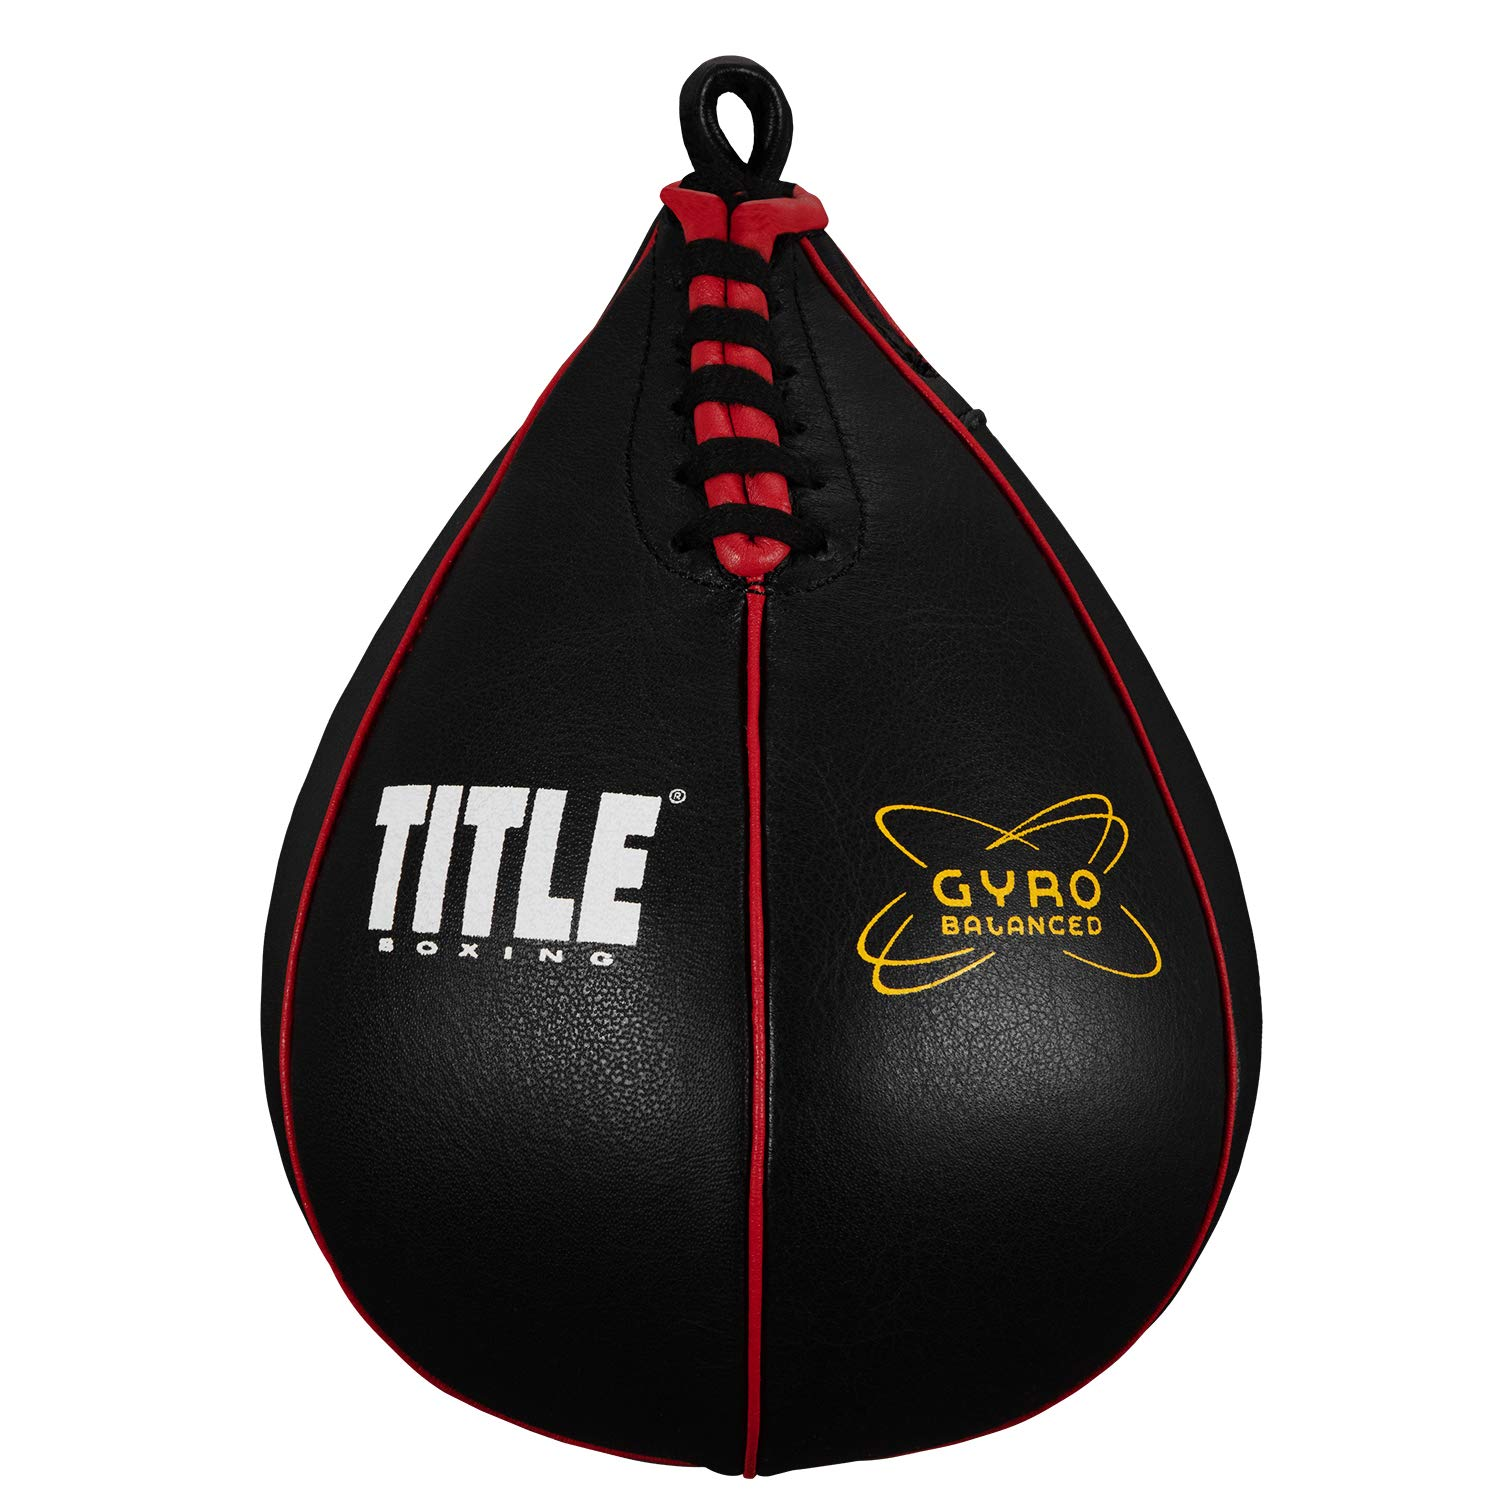 TITLE Boxing Gyro Balanced Speed Bags, Black, Small by Title Boxing